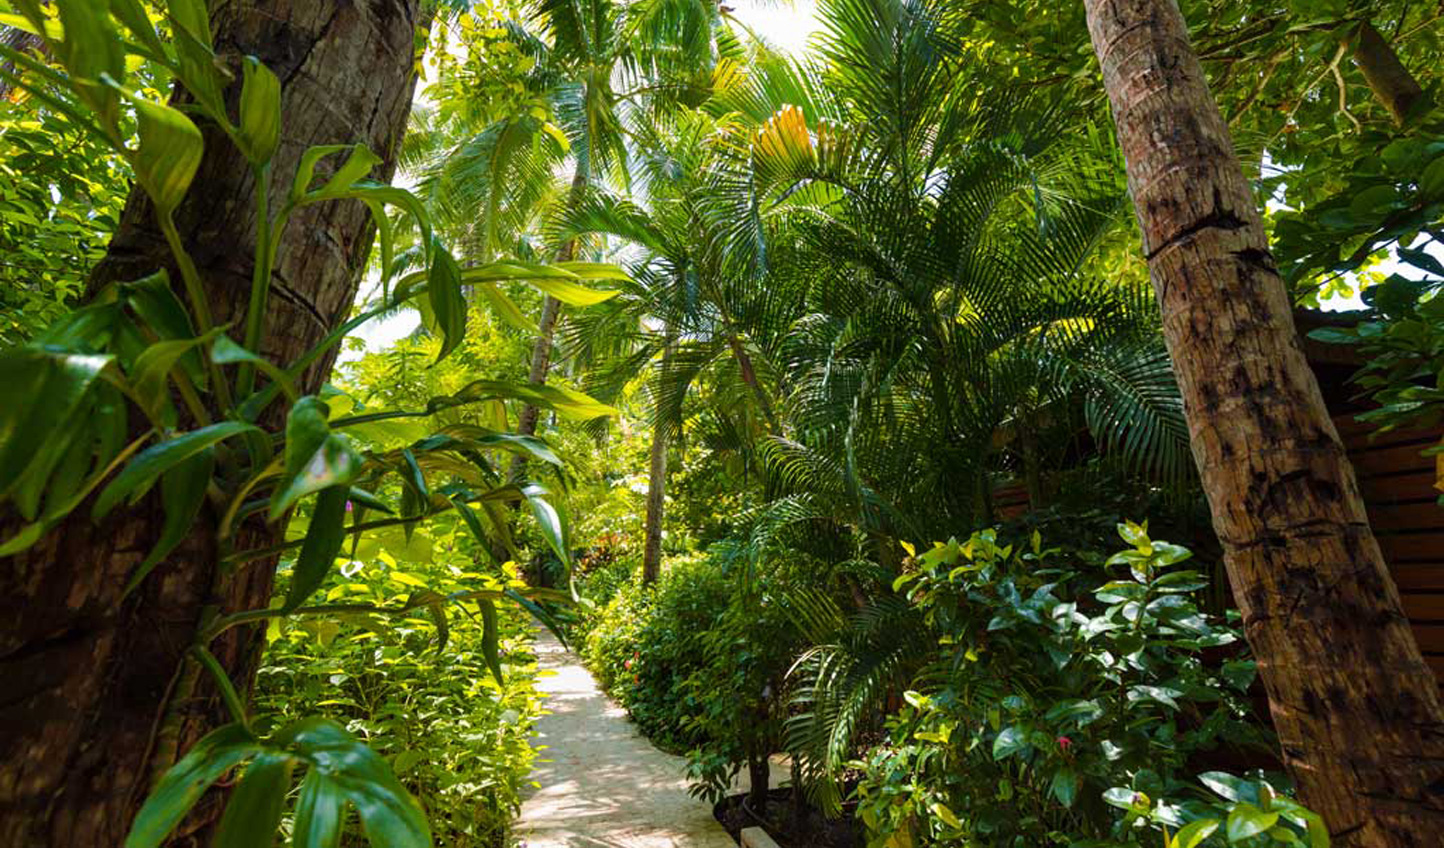 Wander the luscious garden paths